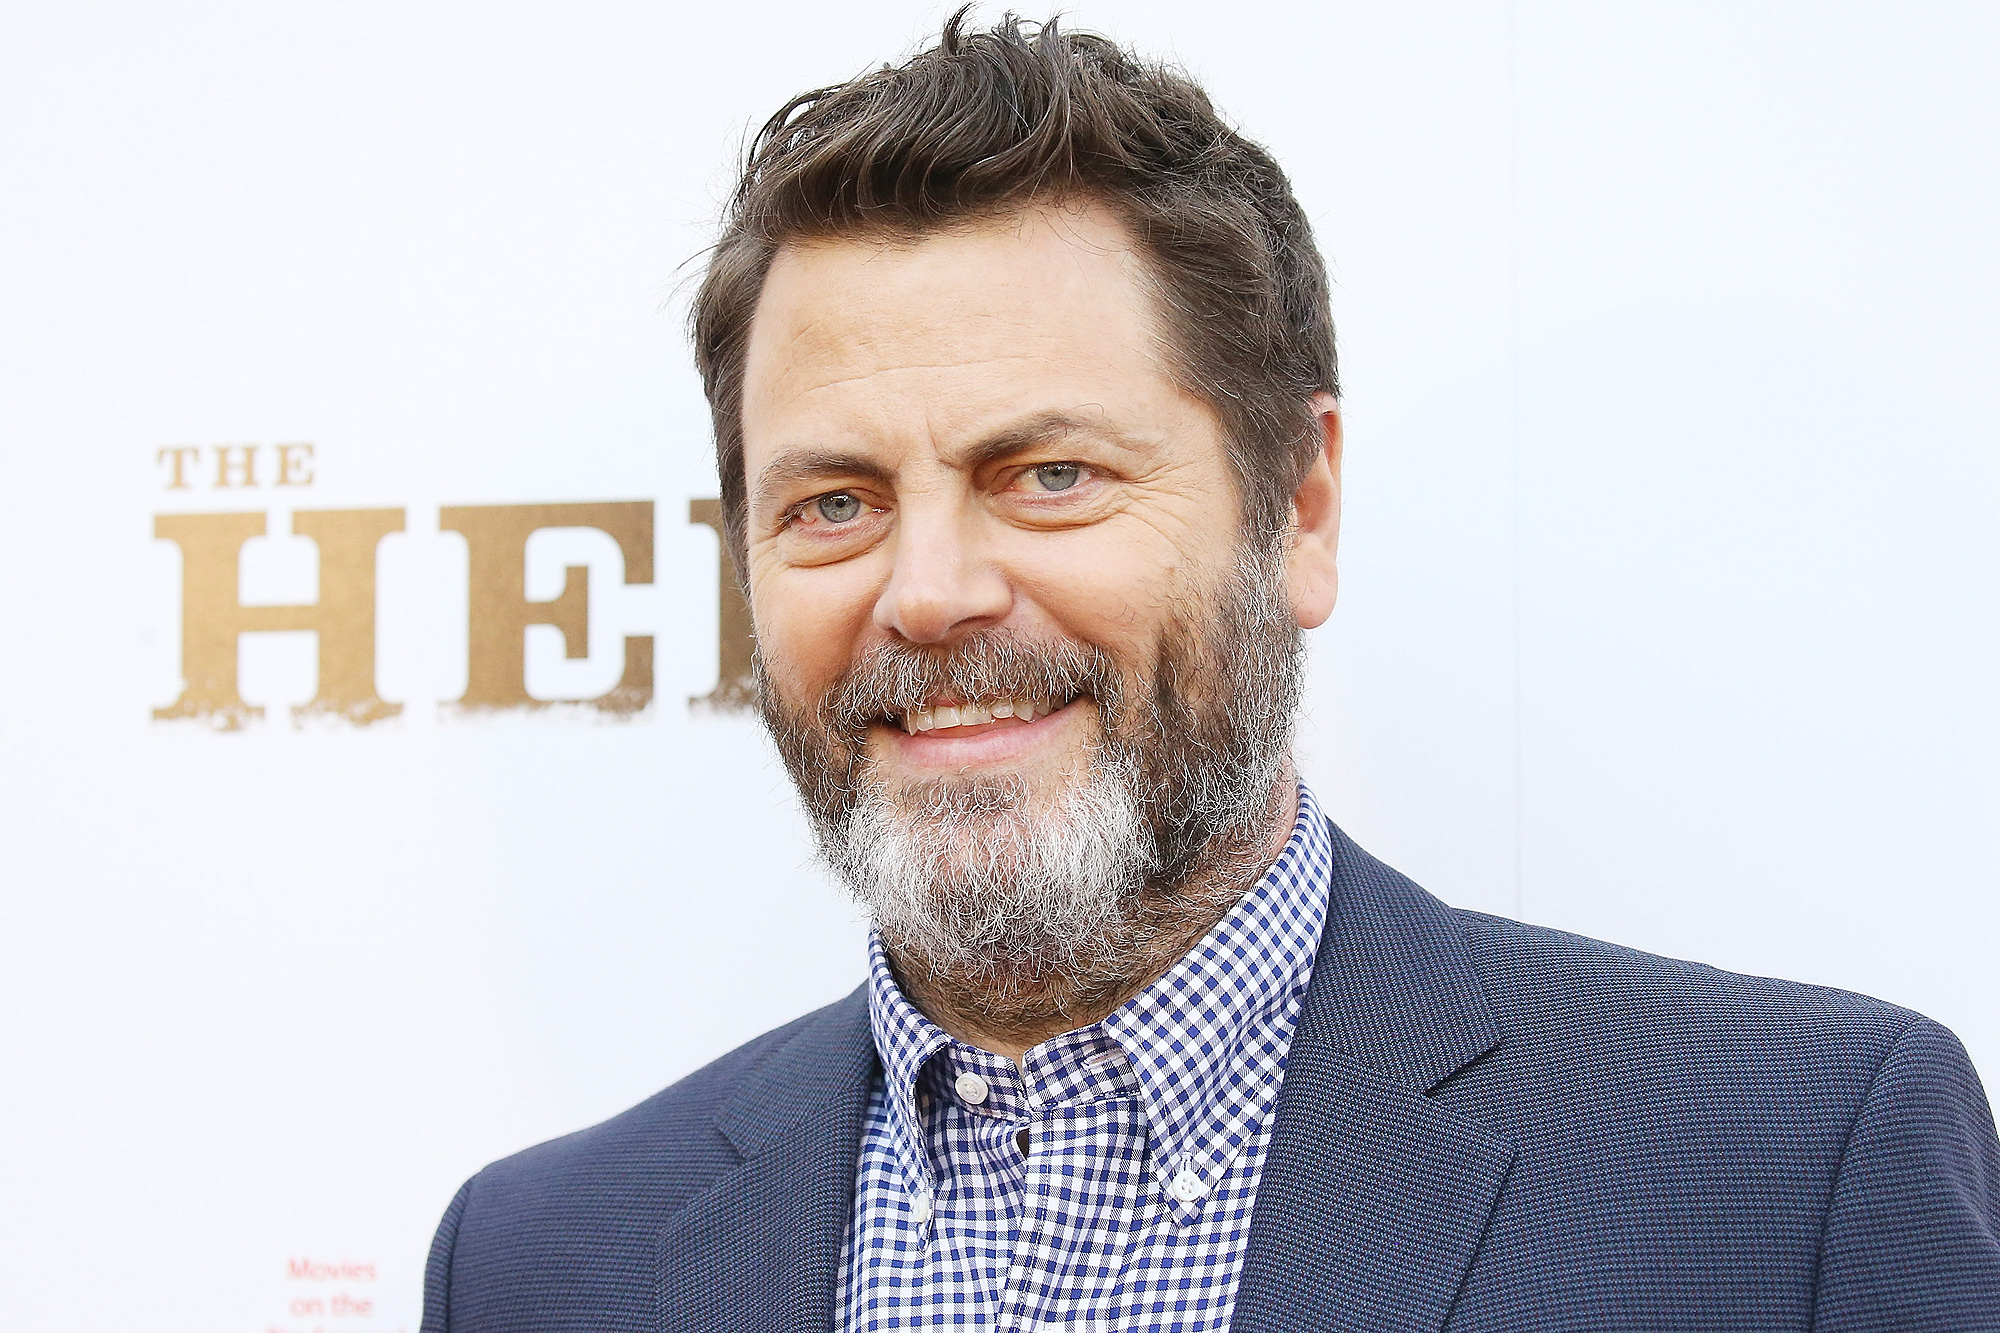 Nick Offerman on His High-Calorie Parks and Rec Diet: They Told Me to 'Stay Beefy'